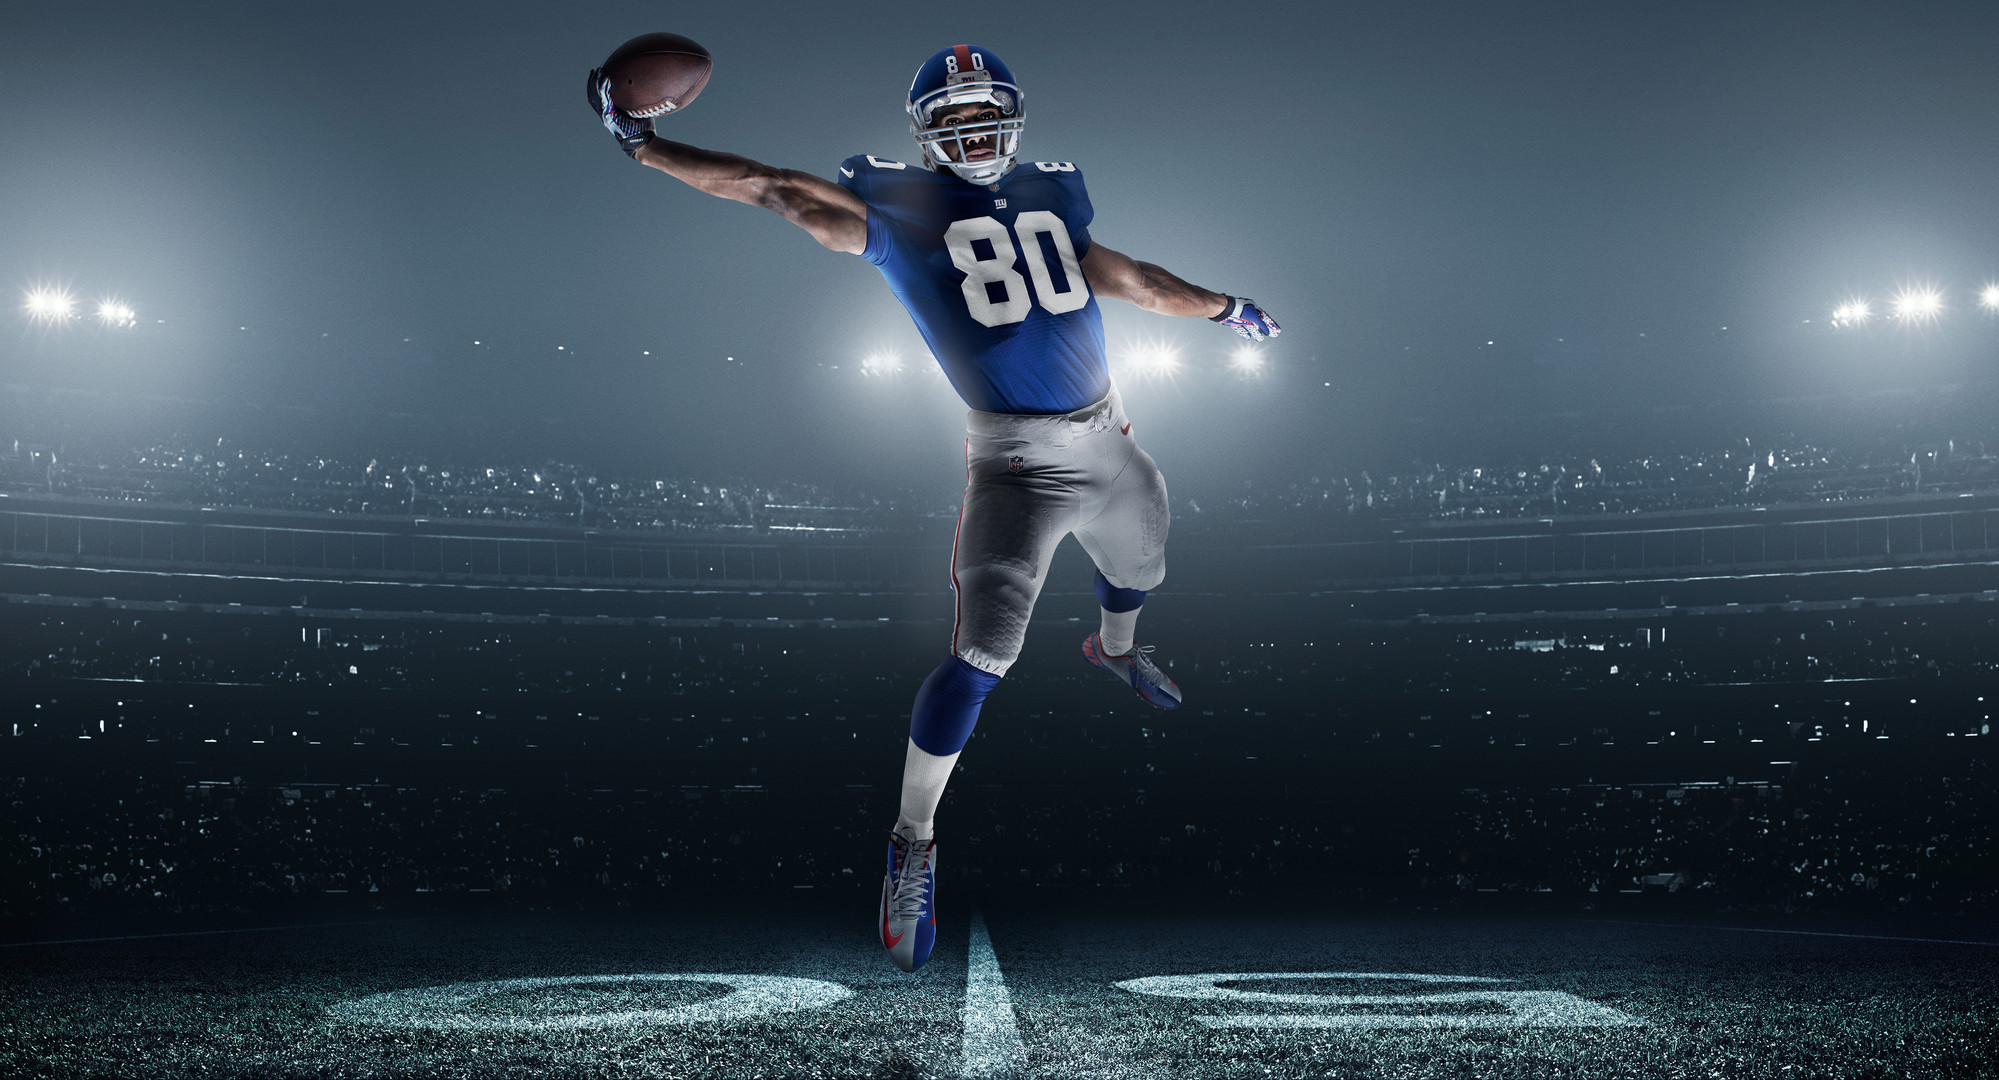 FA12_AT_CRUZ_NFL Giants Uniform_003_TEAM